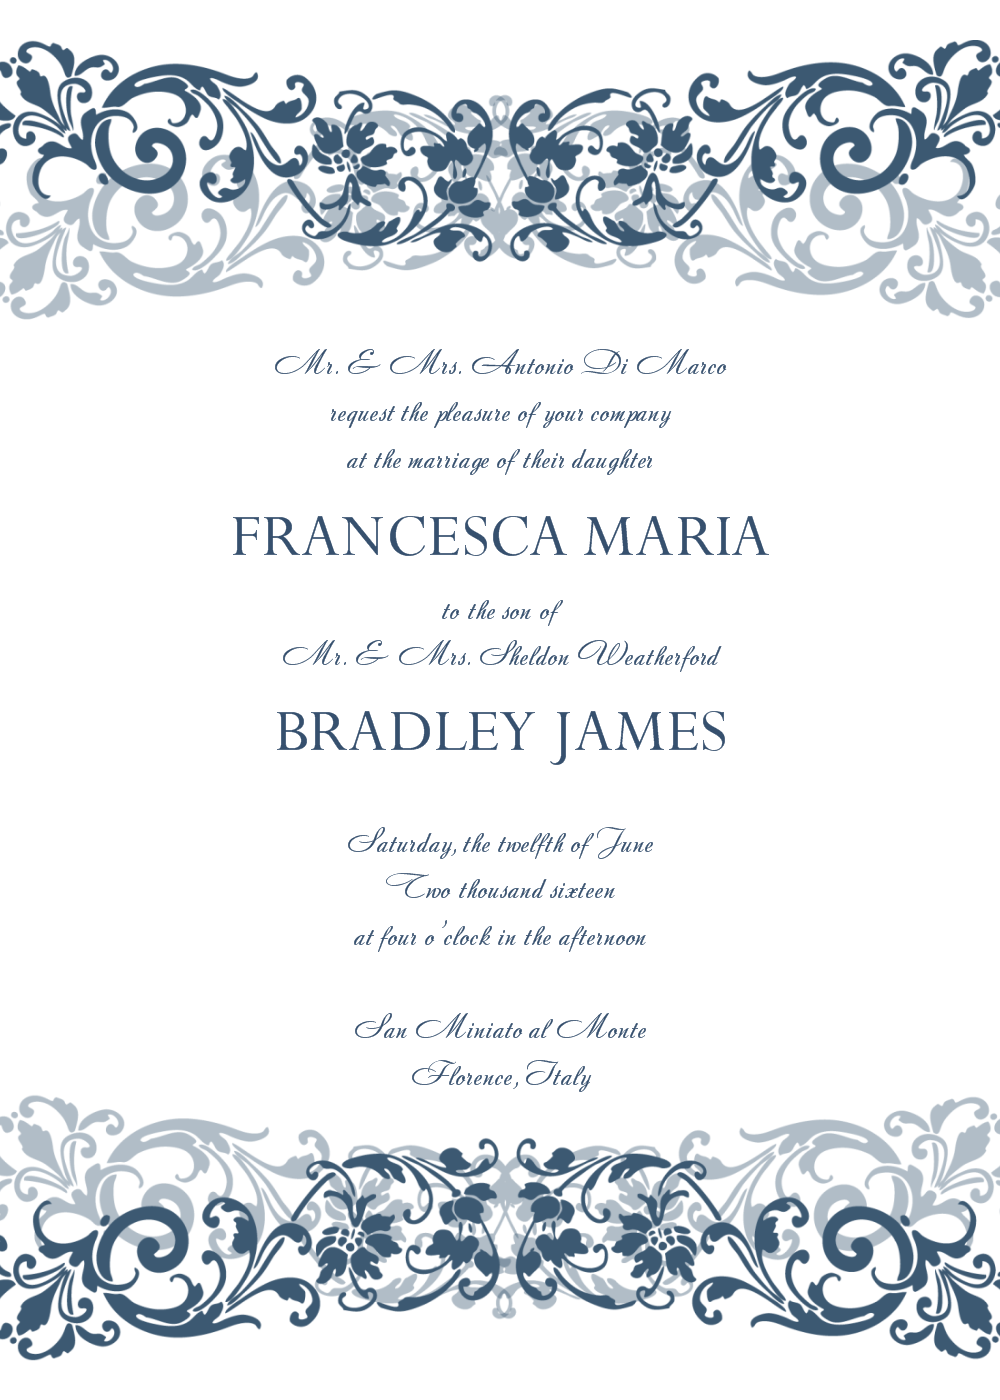 30 free wedding invitations templates 21st bridal for Free wedding invitation templates for word